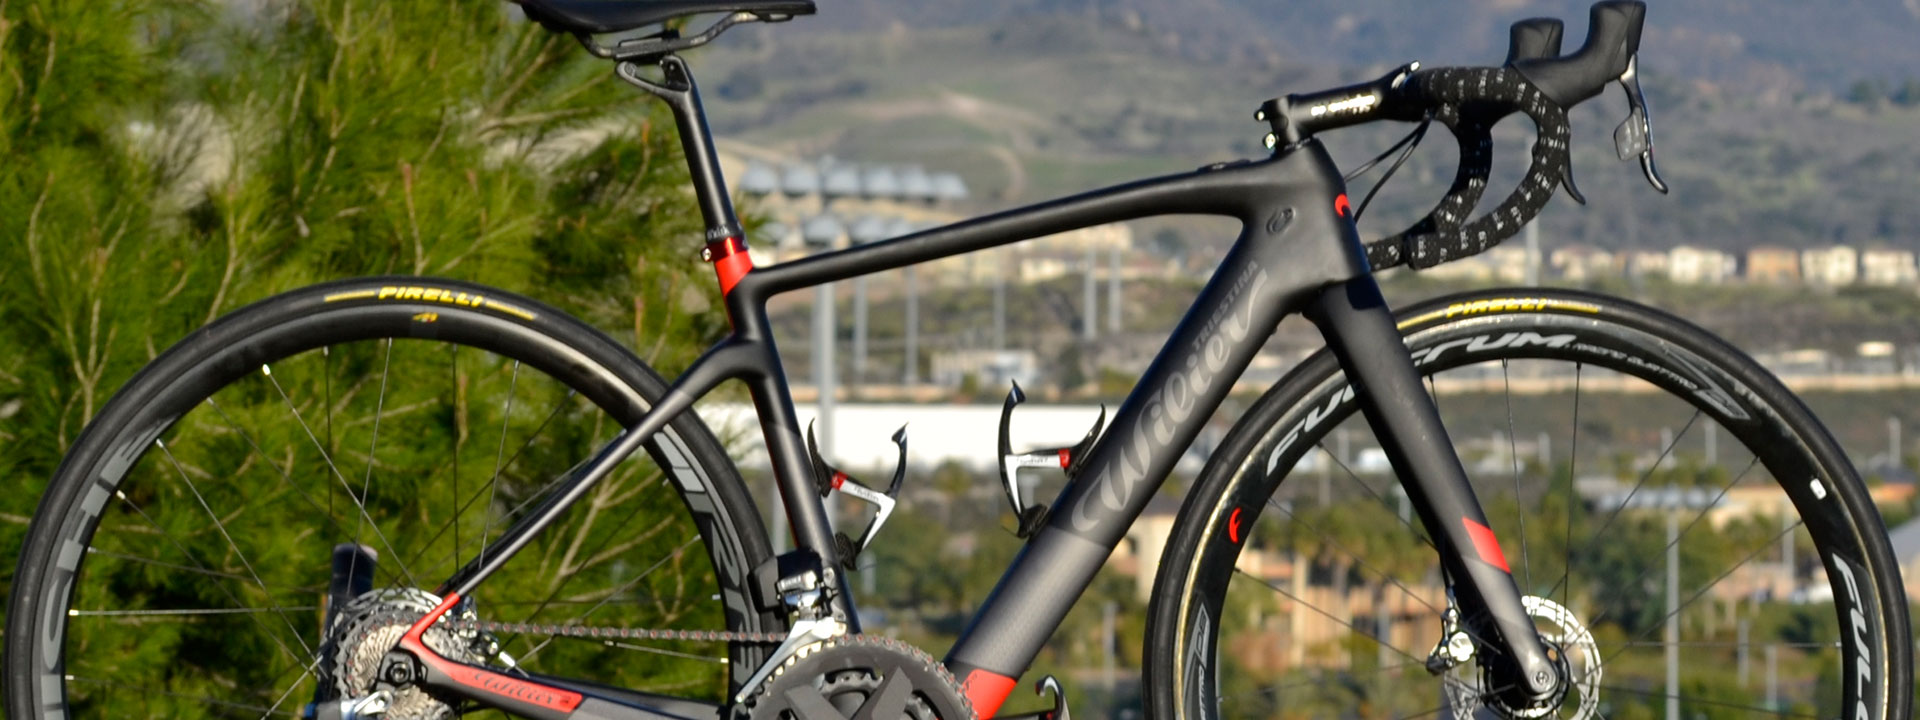 Wilier Triestina Cento1 HY SRAM Red eTap HRD Complete Bike at twohubs.com